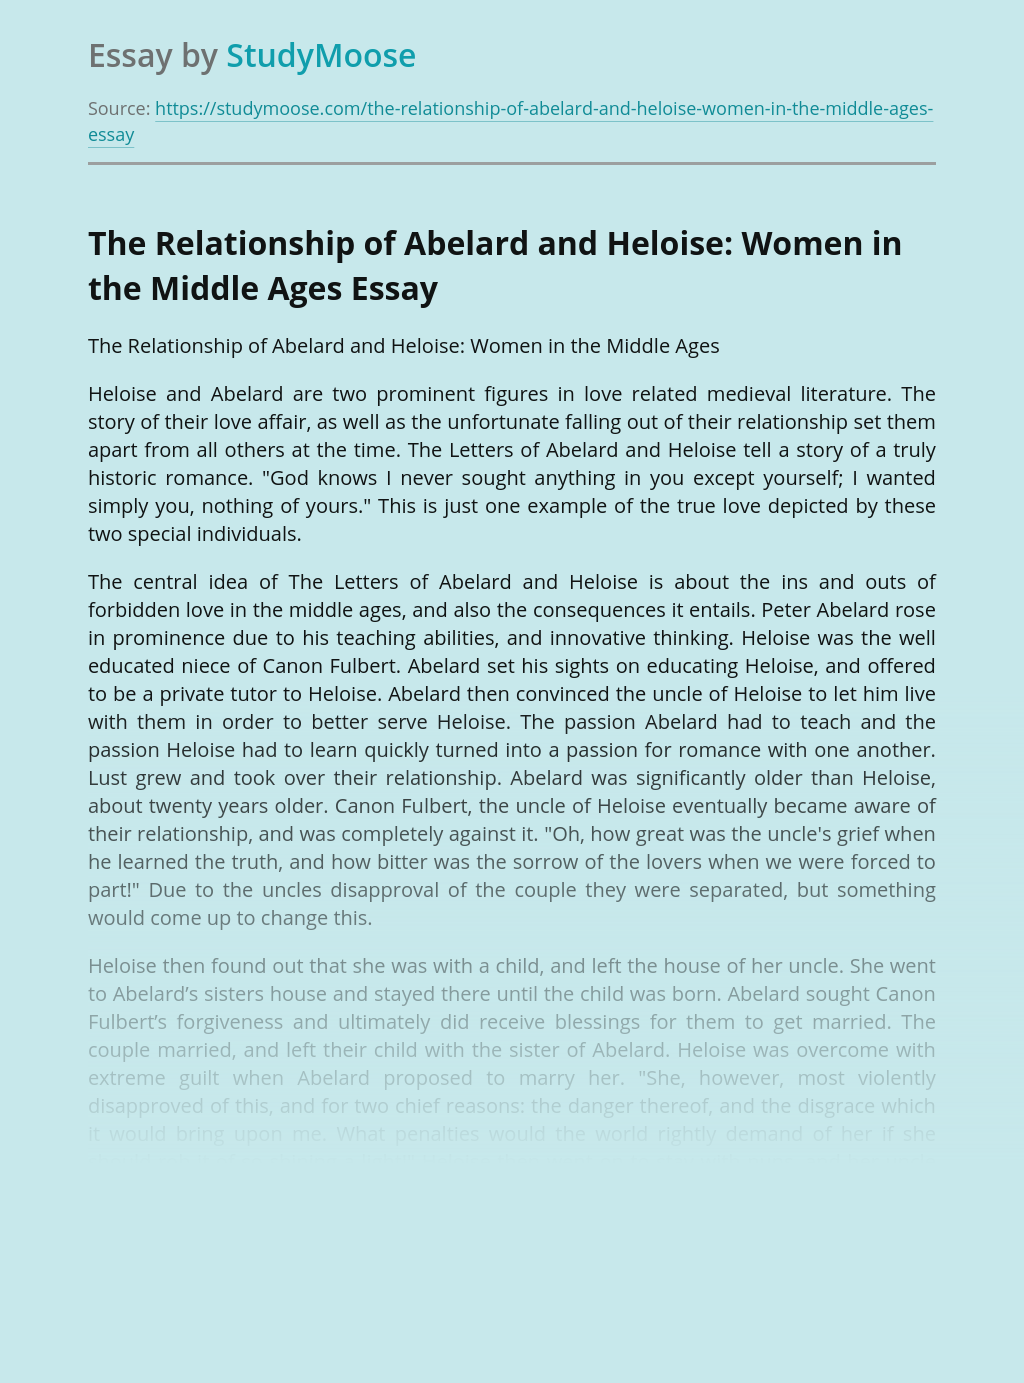 The Relationship of Abelard and Heloise: Women in the Middle Ages